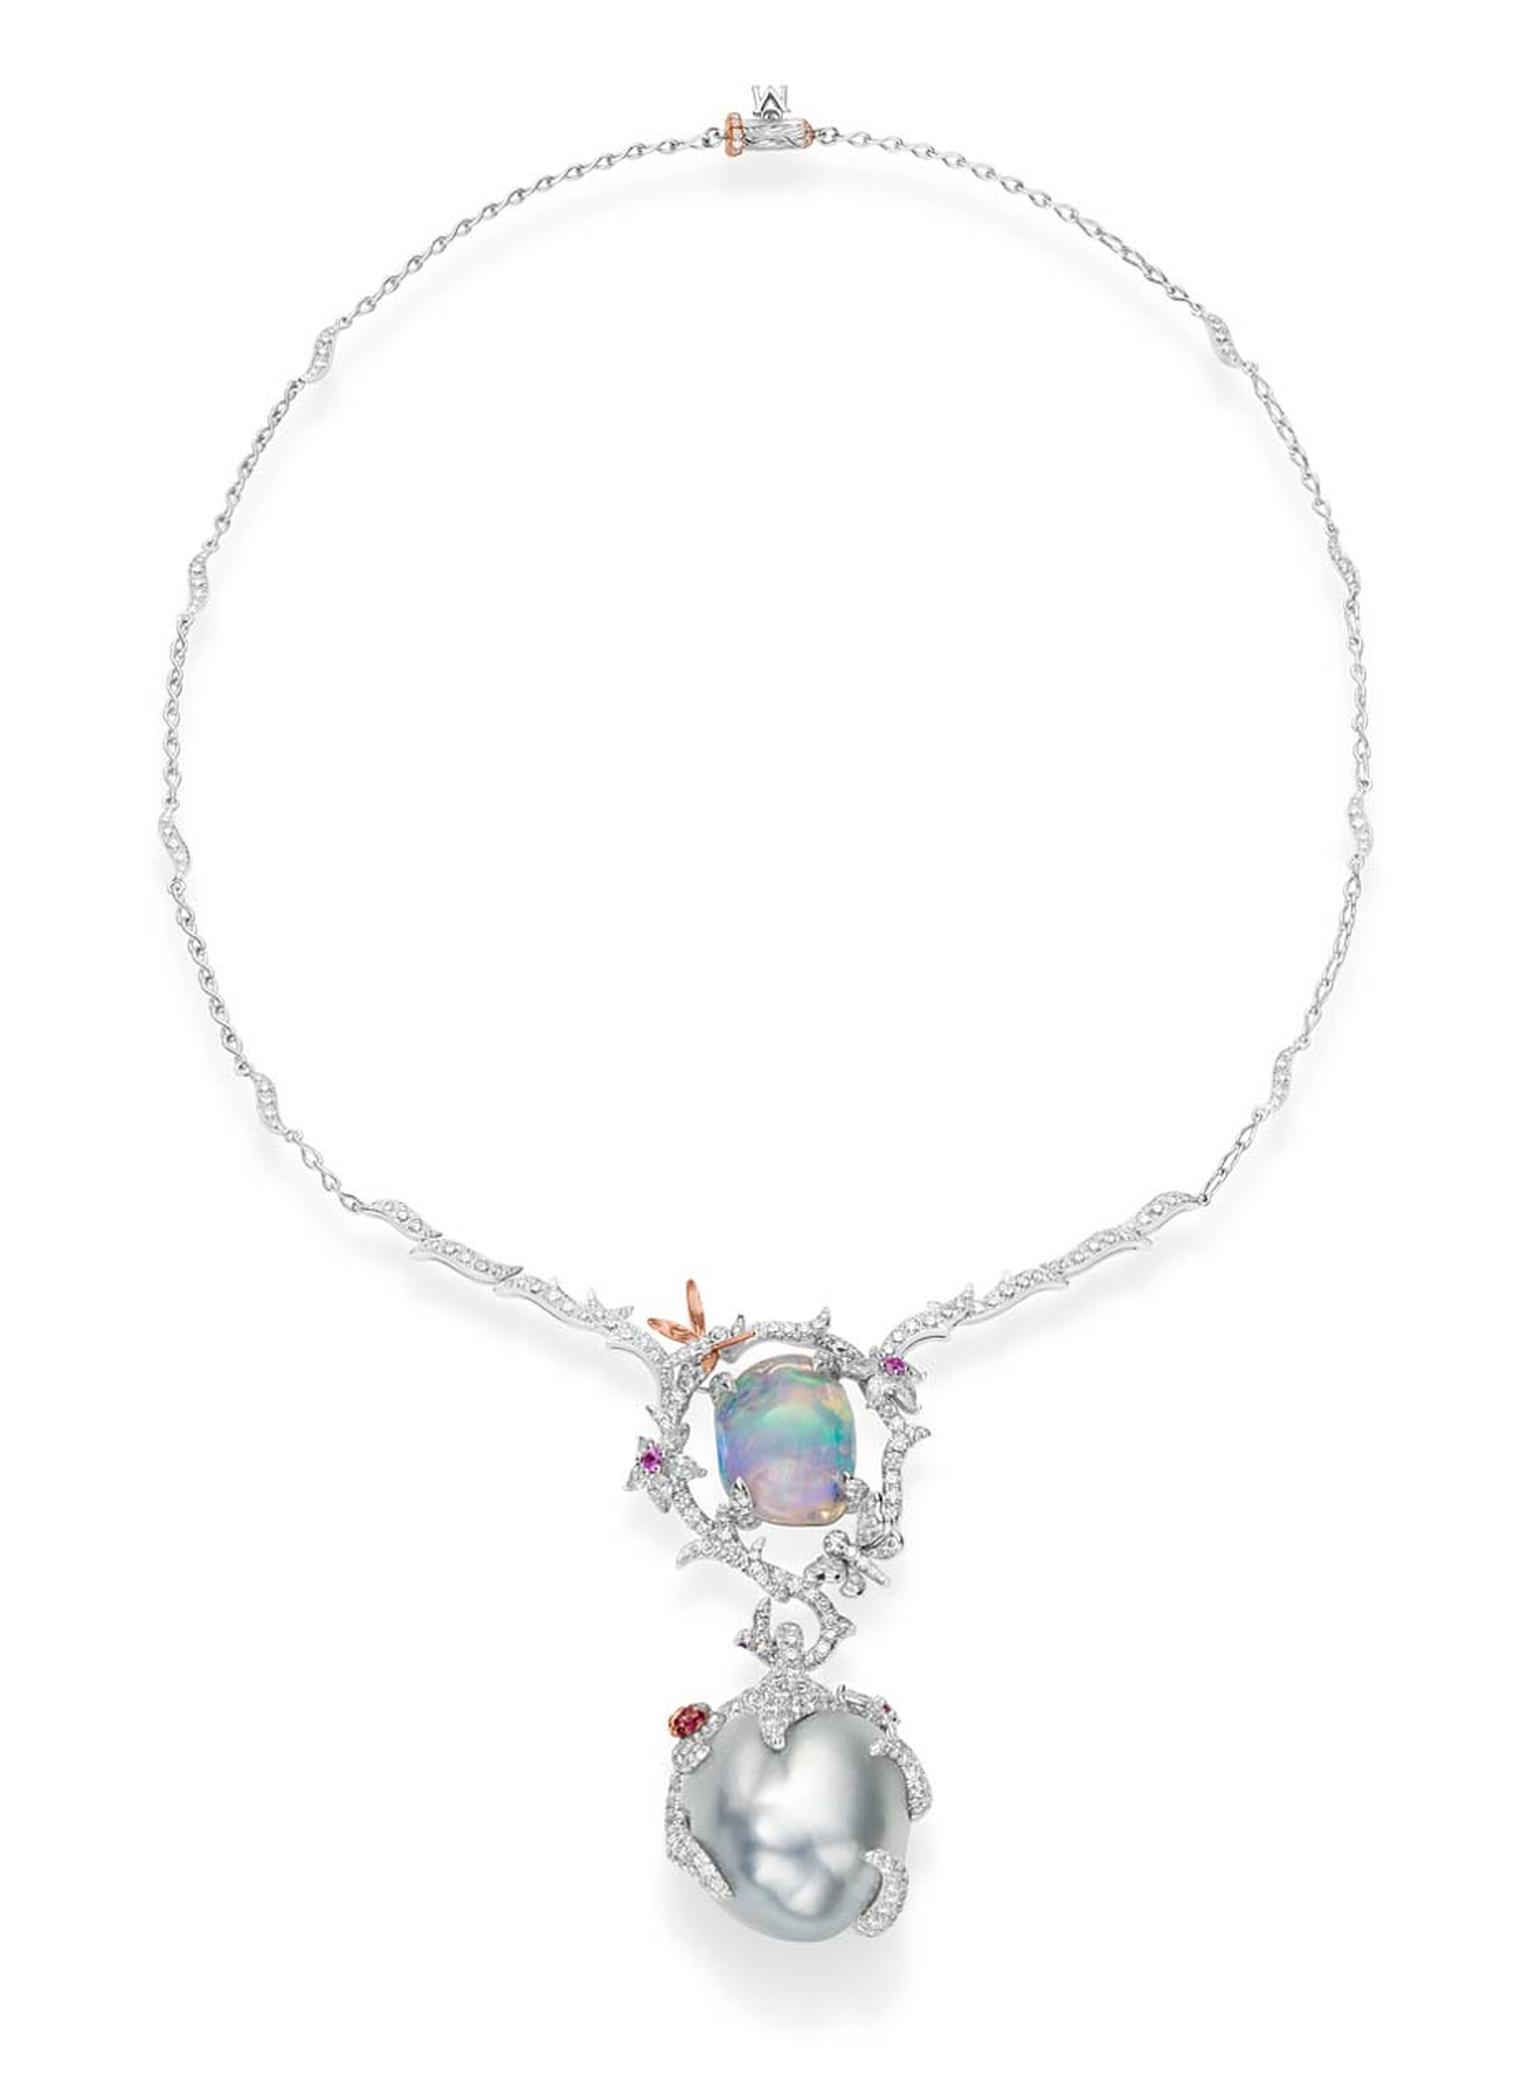 Mikimoto's Legend necklace features a 11.42ct tumbled water opal, a 24mm Baroque South Sea cultured pearl, pink sapphires, rubies and diamonds set in pink and white gold.